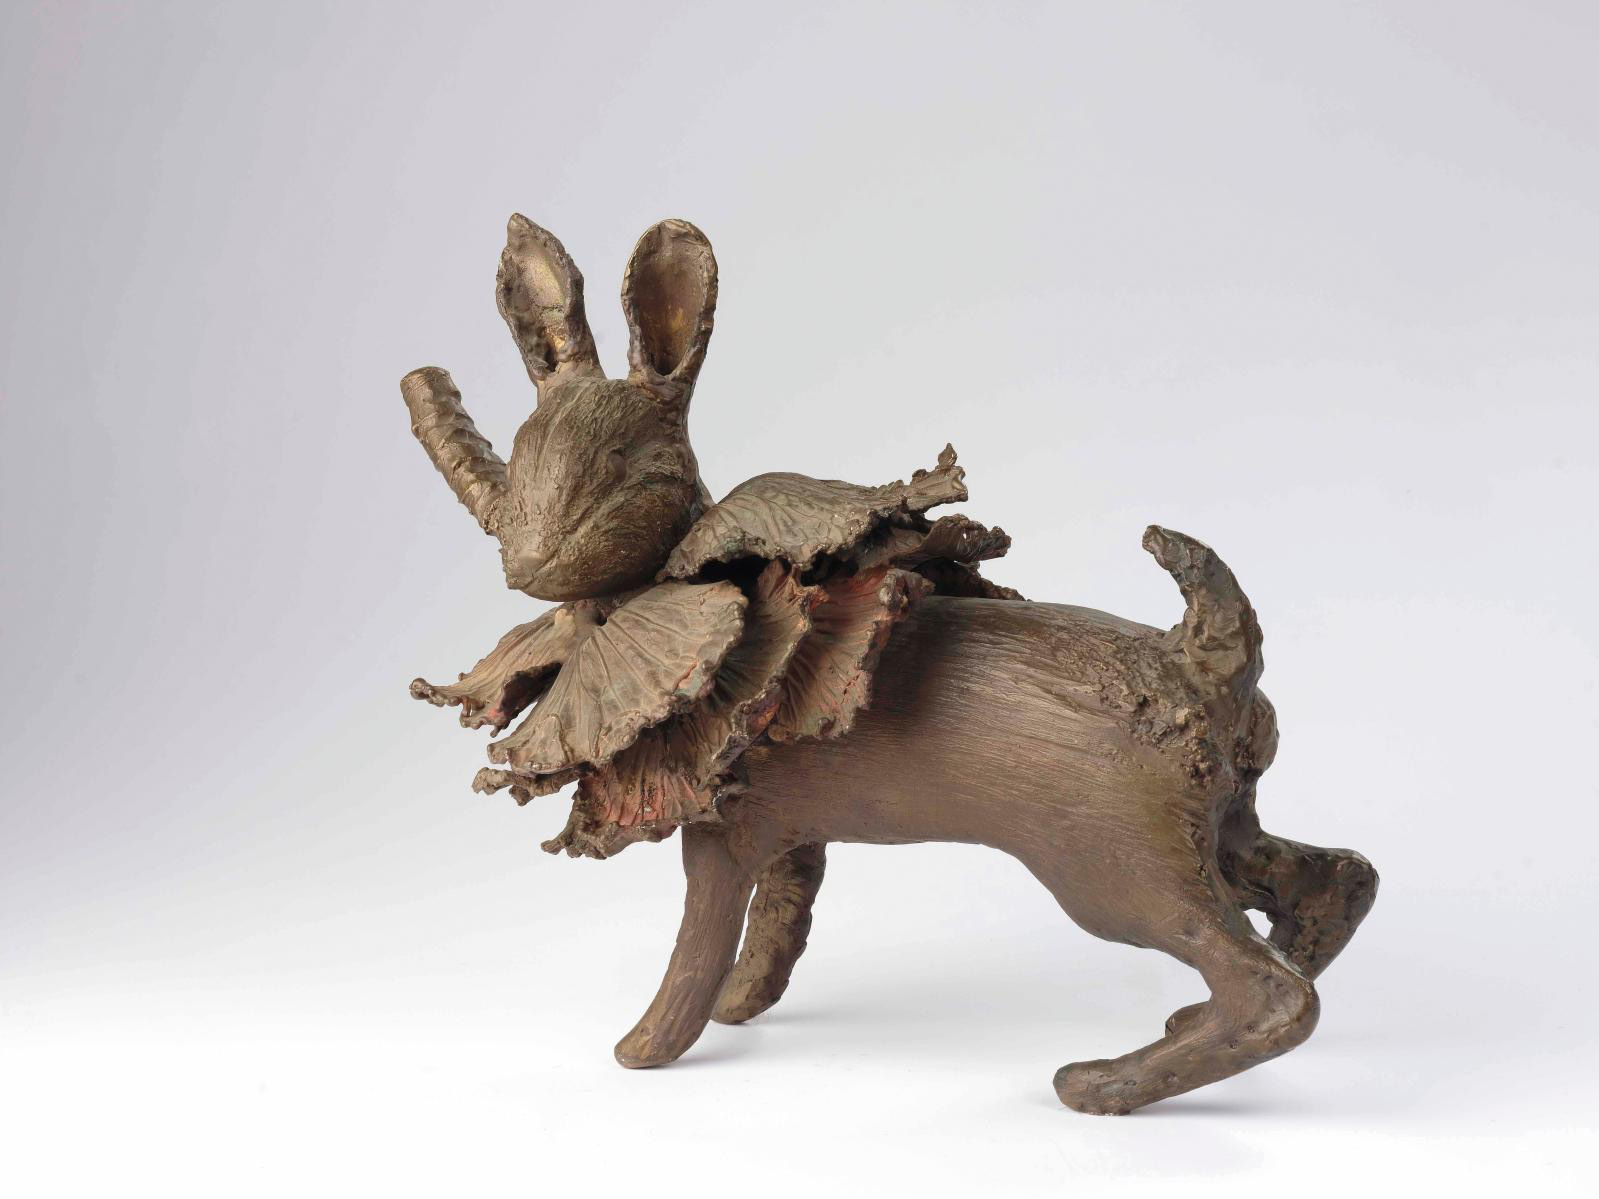 Claude Lalanne (1925–2019), Lapin-Chou I (Rabbit-Cabbage I), bronze proof with a shaded bronze and copper patina, numbered 5/8, 25 x 30 x 17.5 cm/9.84 x 11.81 x 6.89 in. Result: €194,500